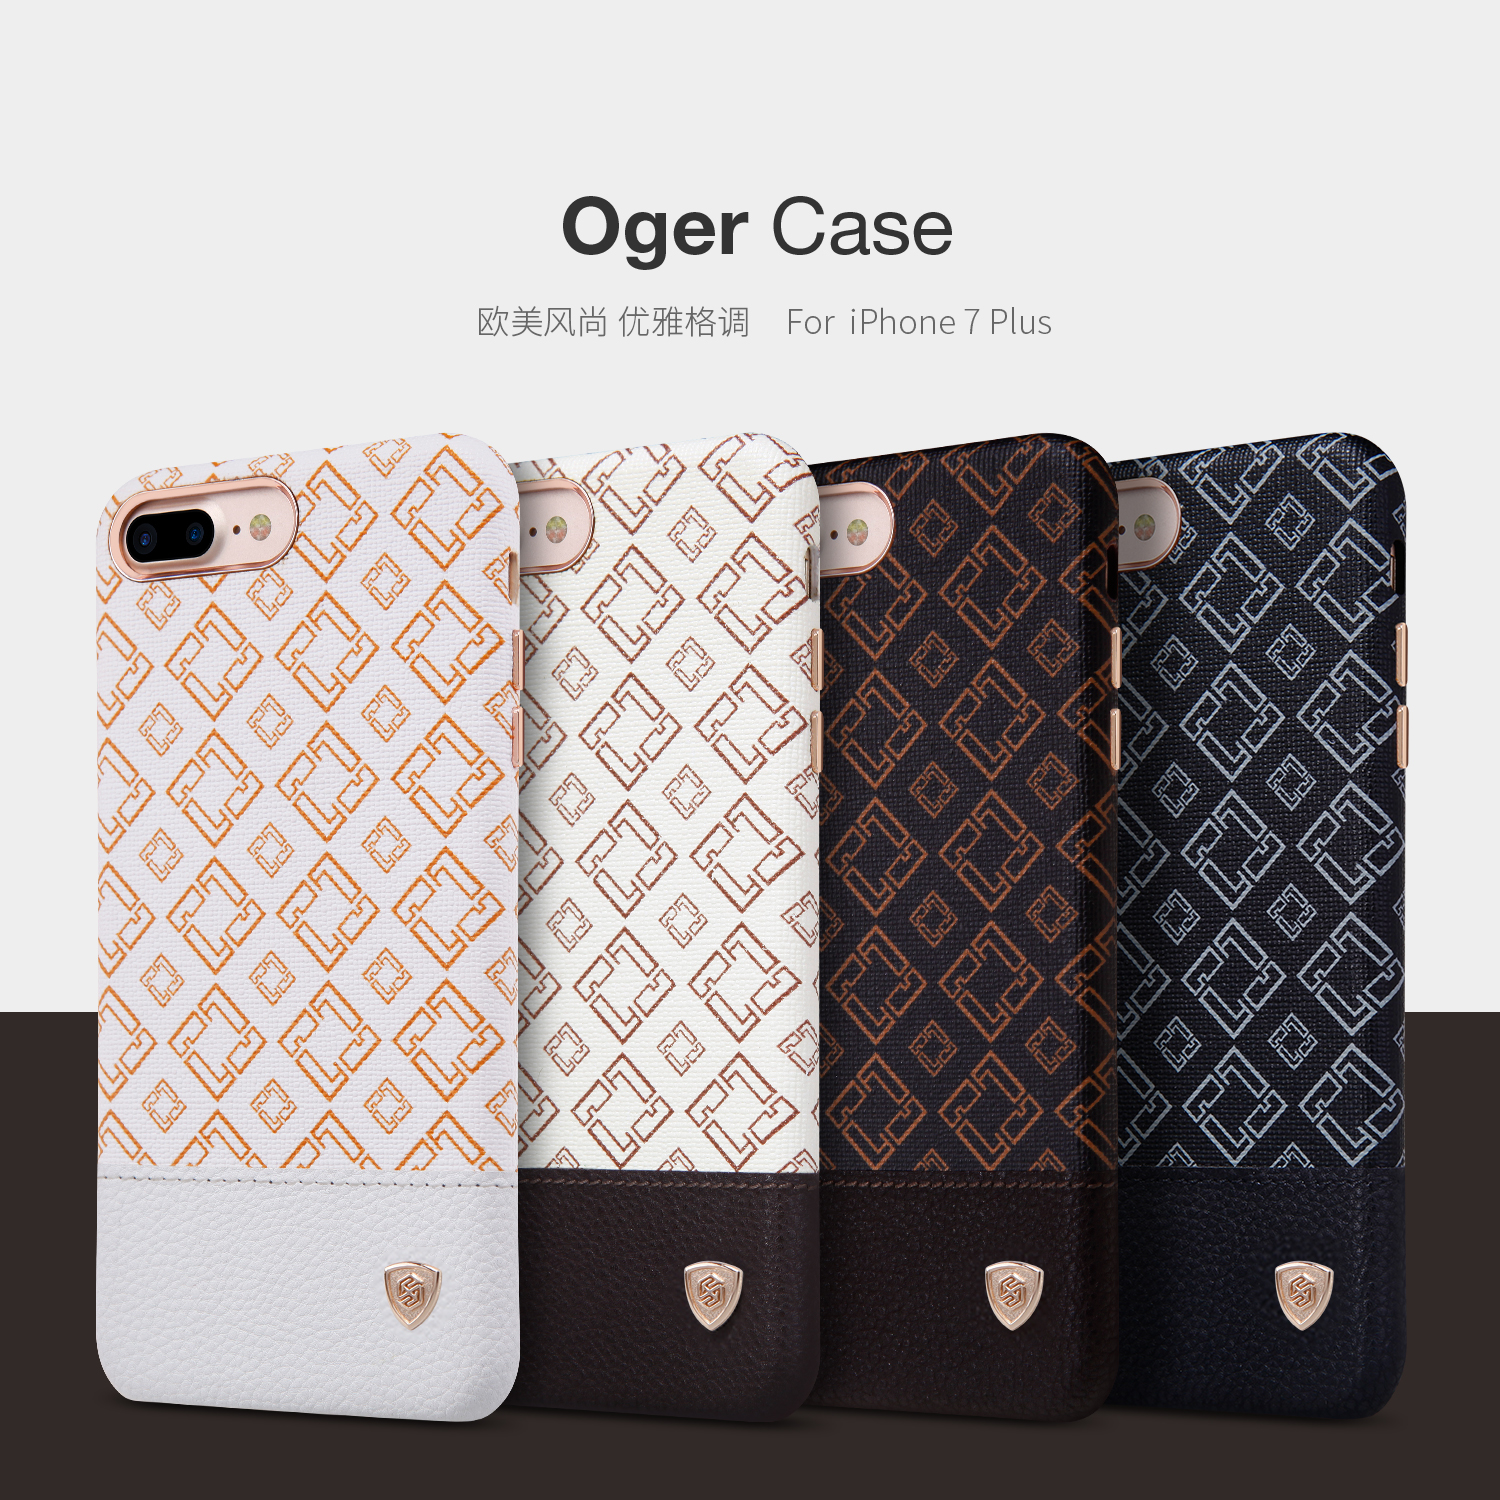 Nillkin Oger Plaid PU Leather Case For iPhone 7 7 Plus Hard Back Cover for iPhone